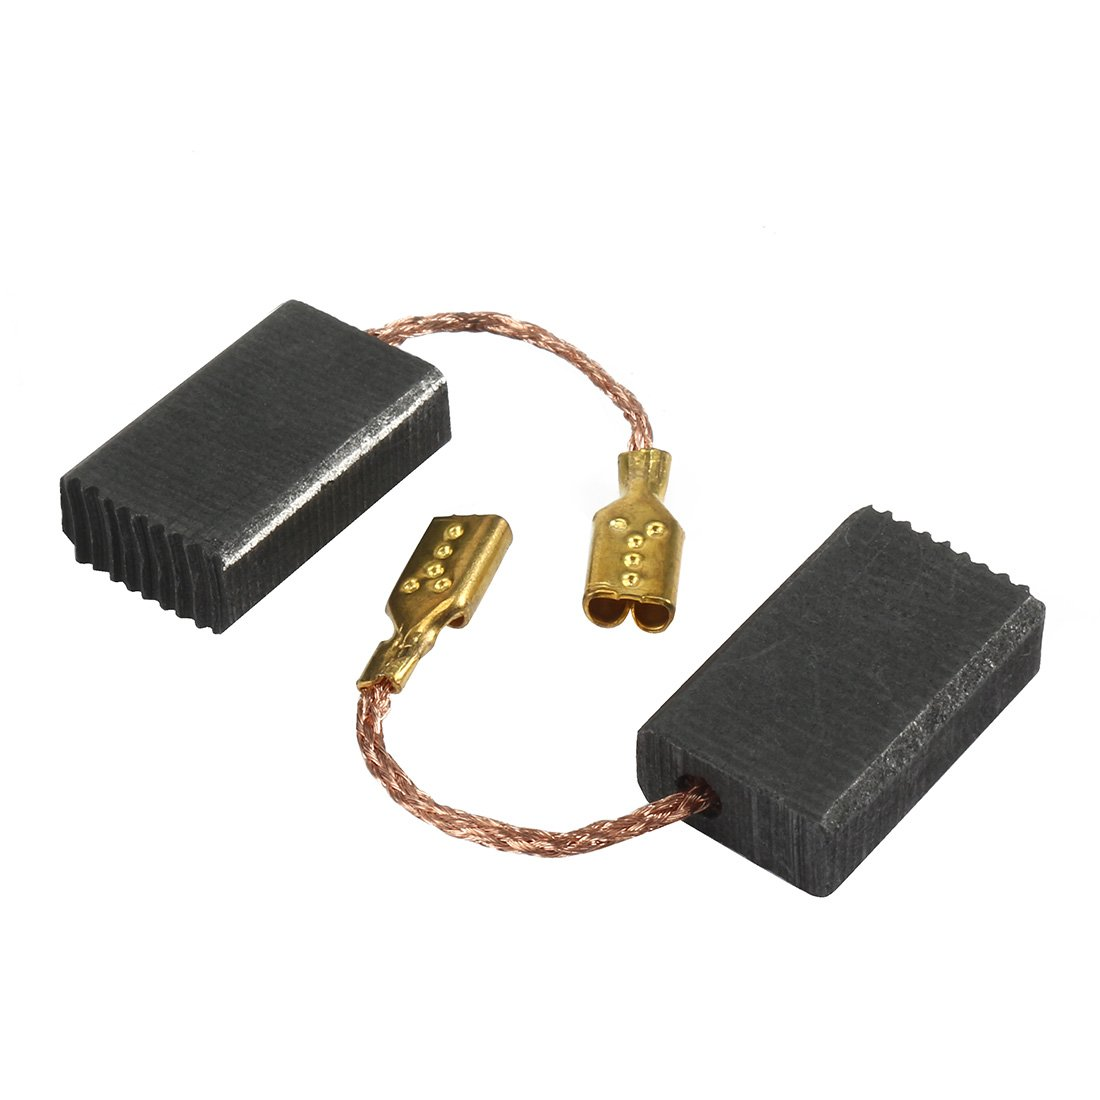 uxcell 1 Pair Carbon Motor Brushes Spare Part Power Tool 5mm x 10mm x 15mm